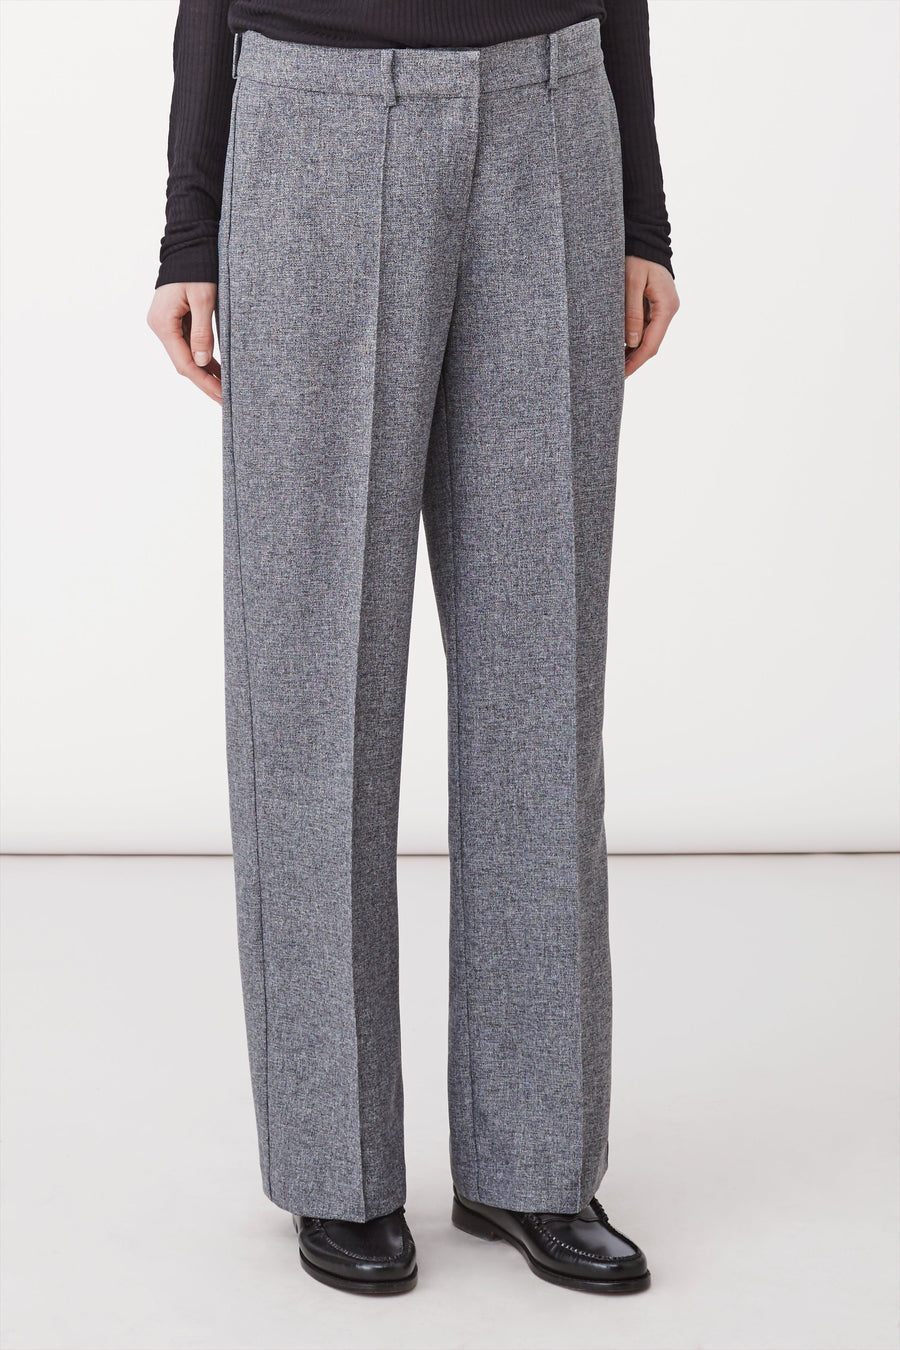 BORIS TROUSERS - GREY MELANGE Trousers Stylein